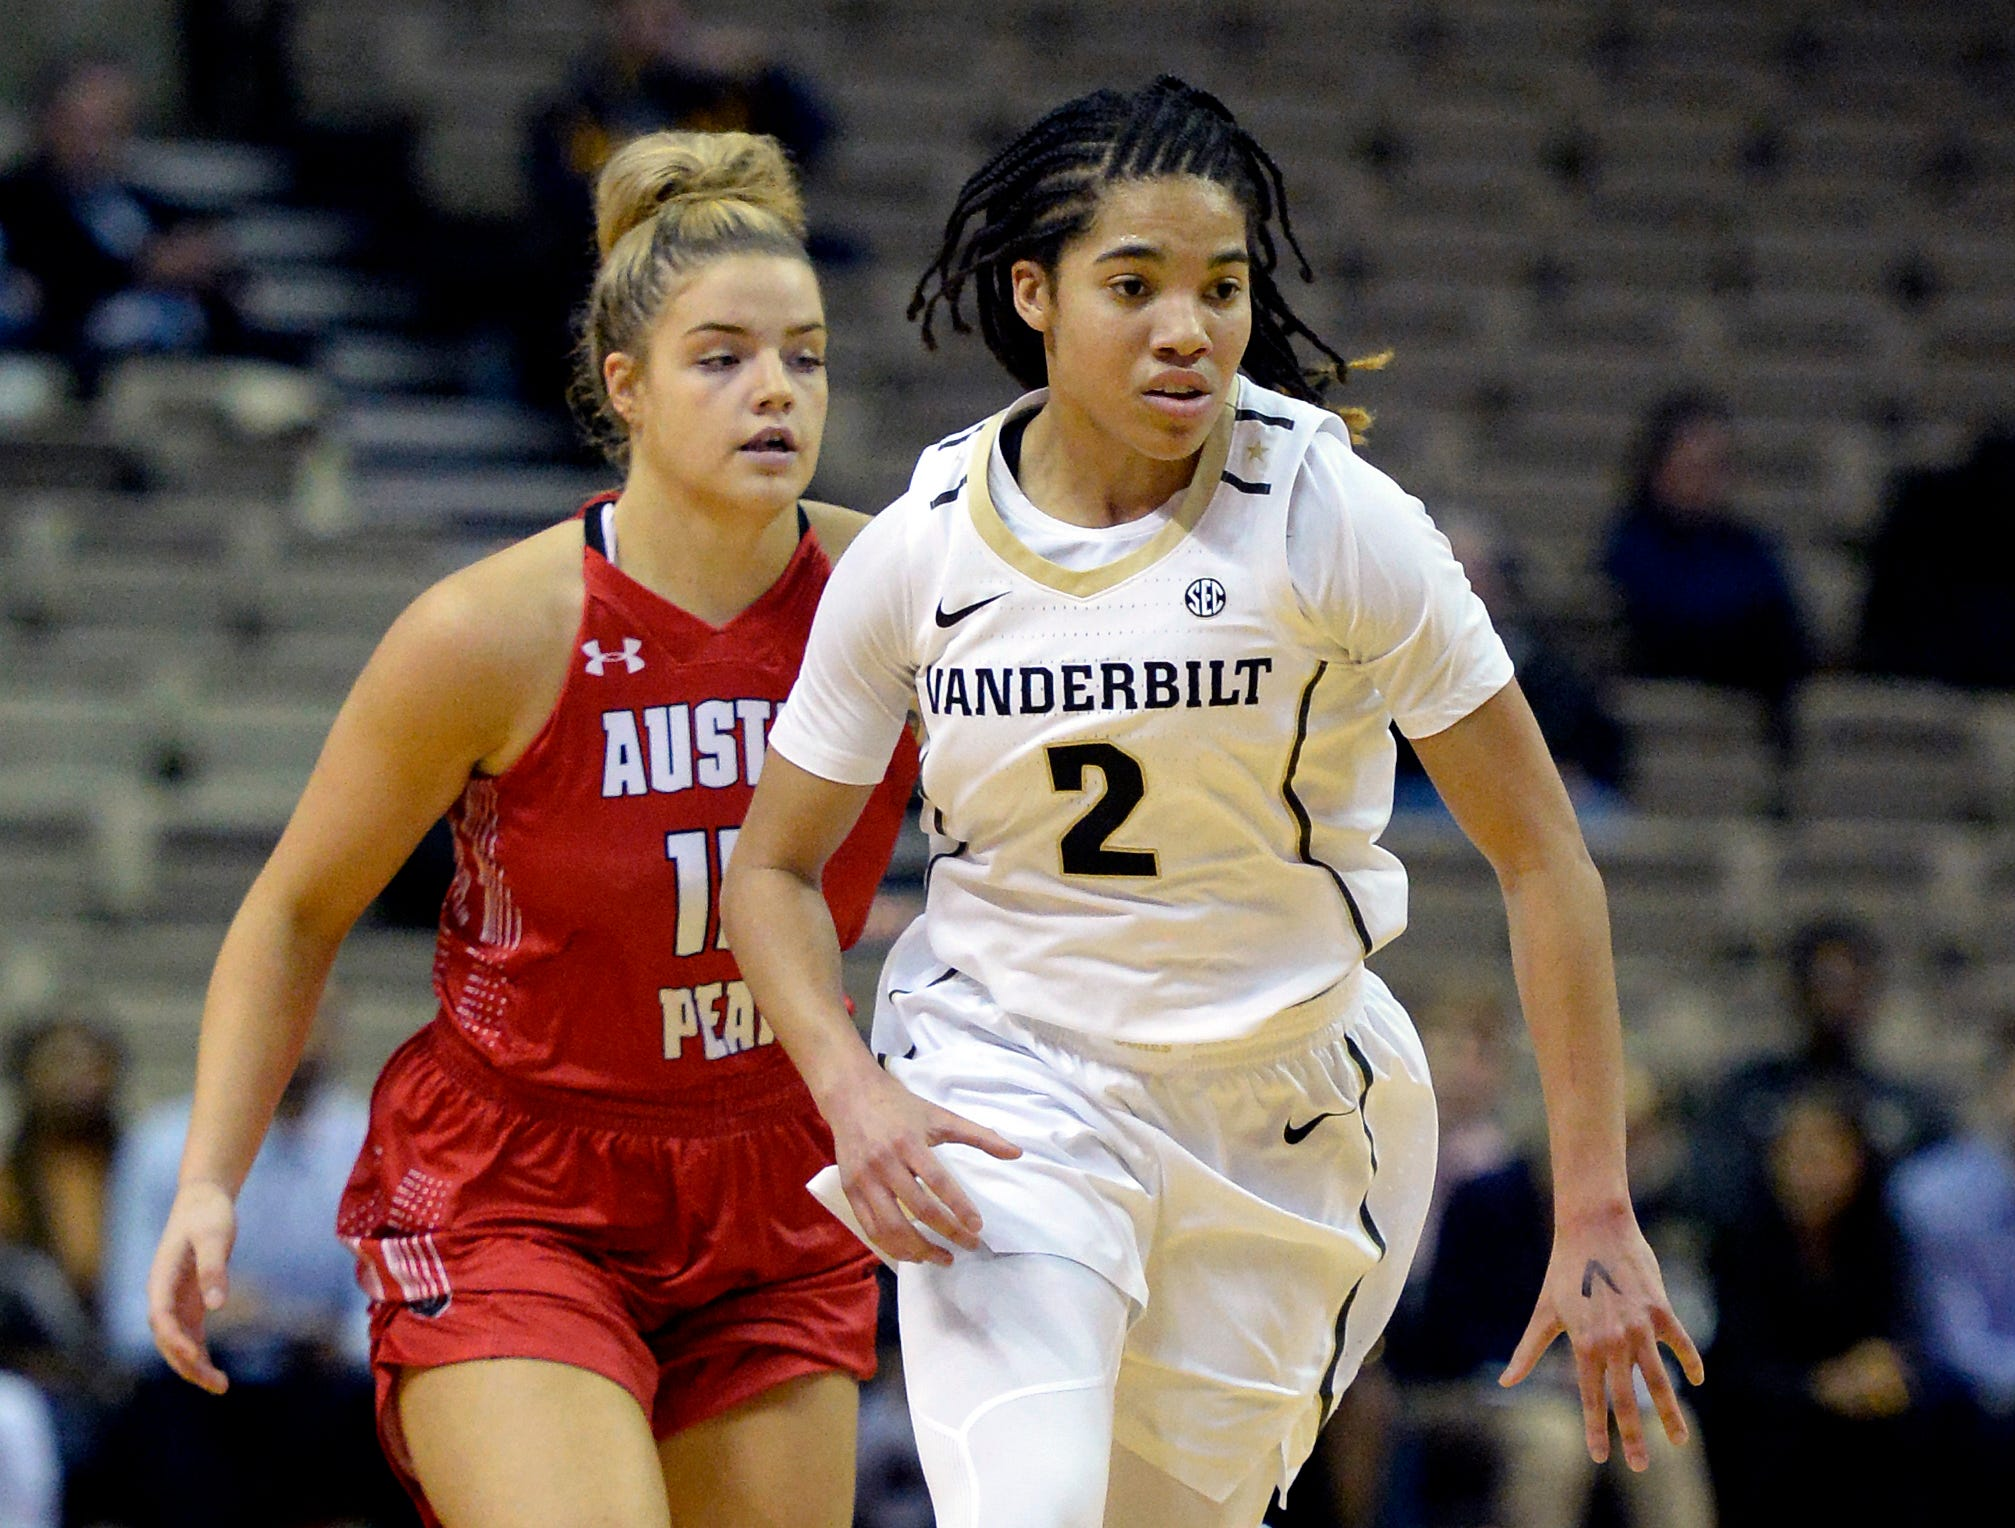 Vanderbilt guard Chelsie Hall (2) dribbles past Austin Peay guard Kasey Kidwell (15) during the first half of an NCAA college basketball game Monday, Nov. 12, 2018, in Nashville, Tenn.